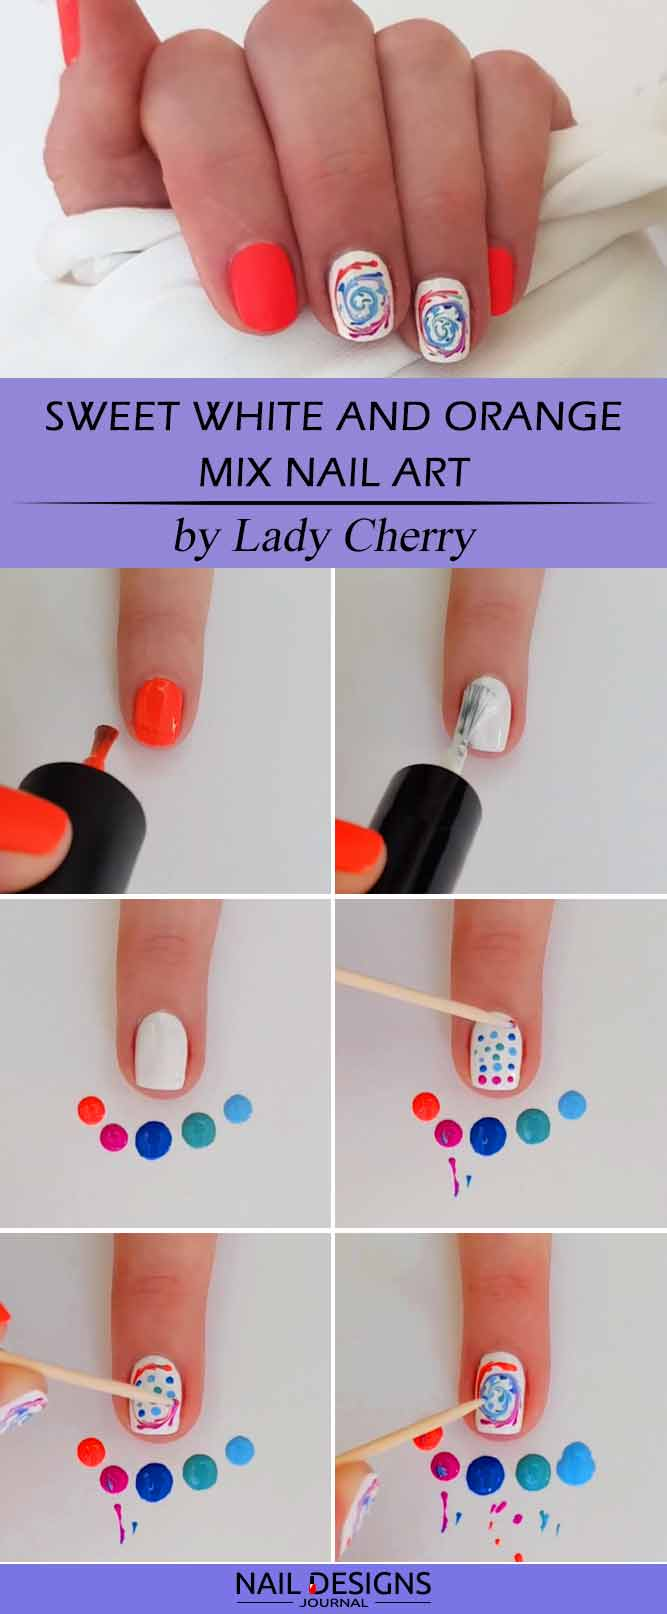 Sweet White and Orange Mix Nail Art